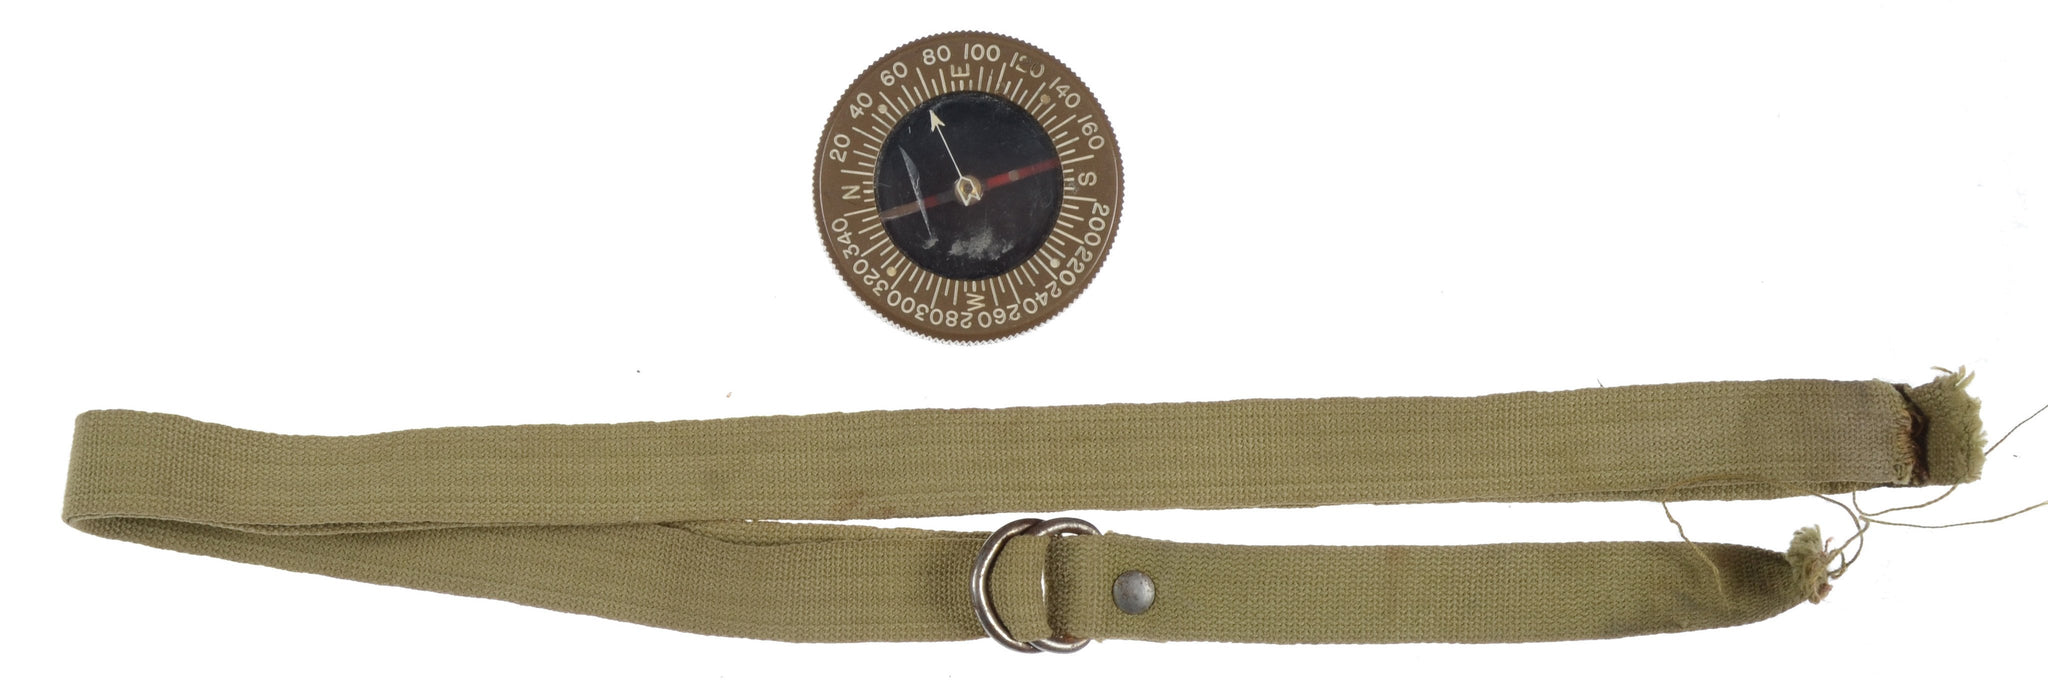 U.S. WW2 ISSUE COMPASS